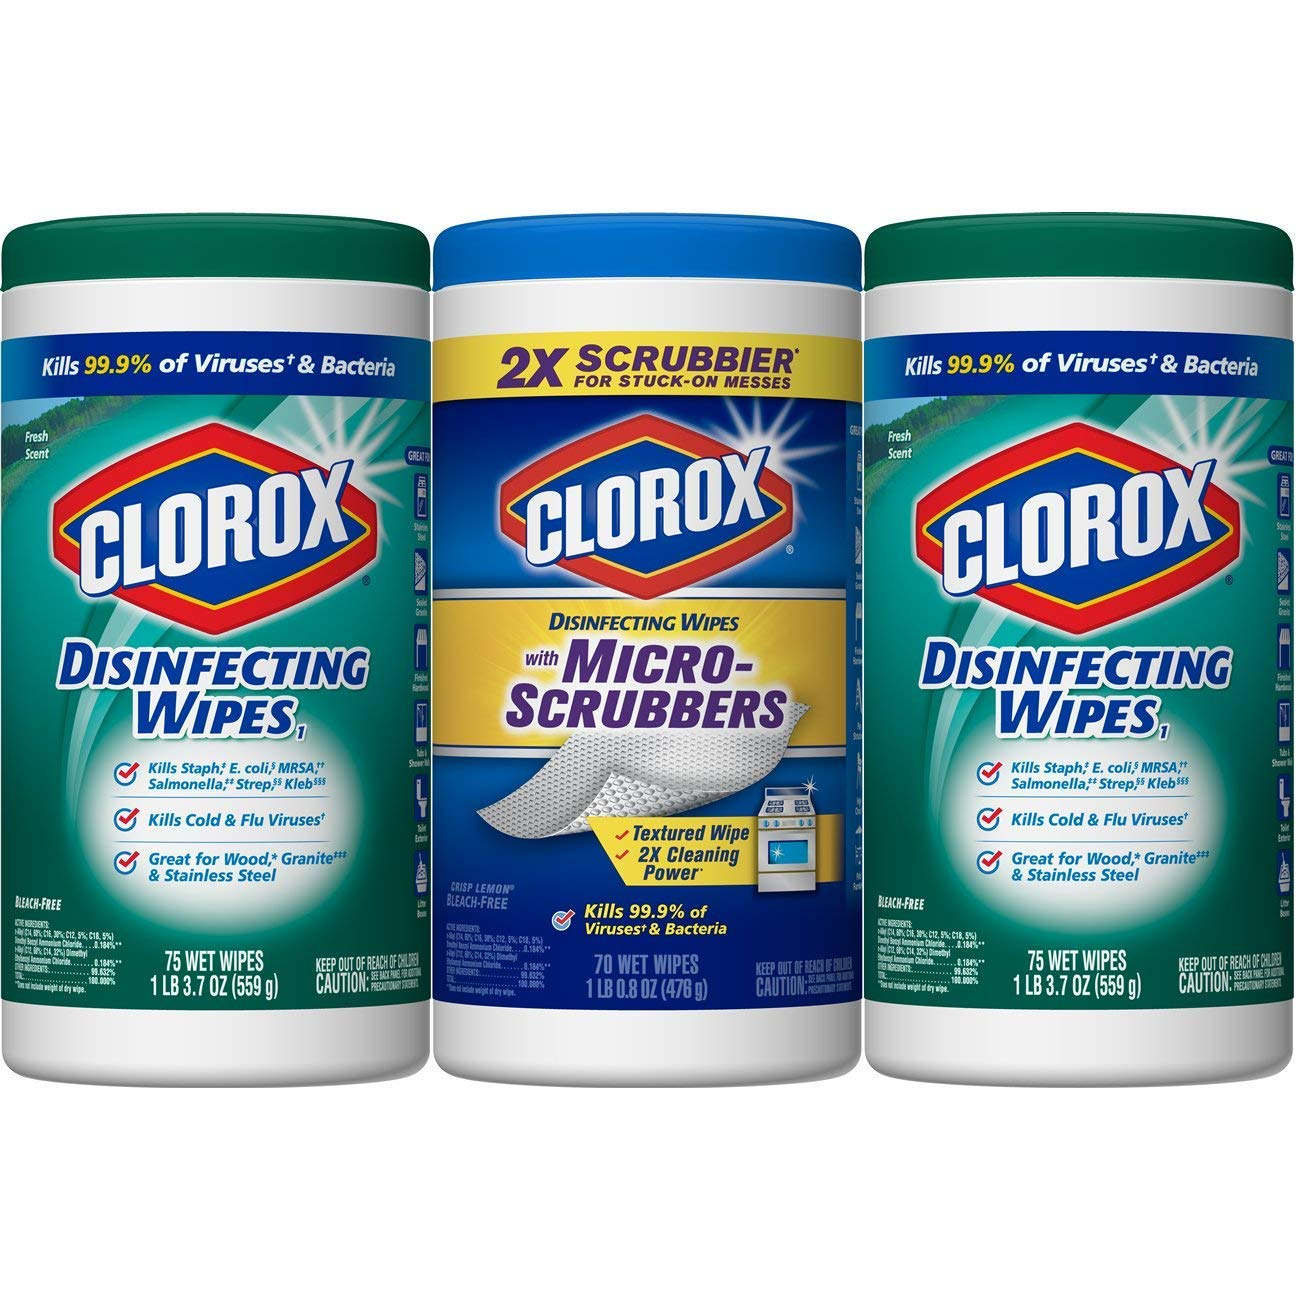 Clorox Disinfecting Wipes ZXFAF Disinfecting Wipes Plus with Micro-Scrubbers Value Pack - Bleach Free Cleaning Wipes, Pack of 12, 75 Wipes Each